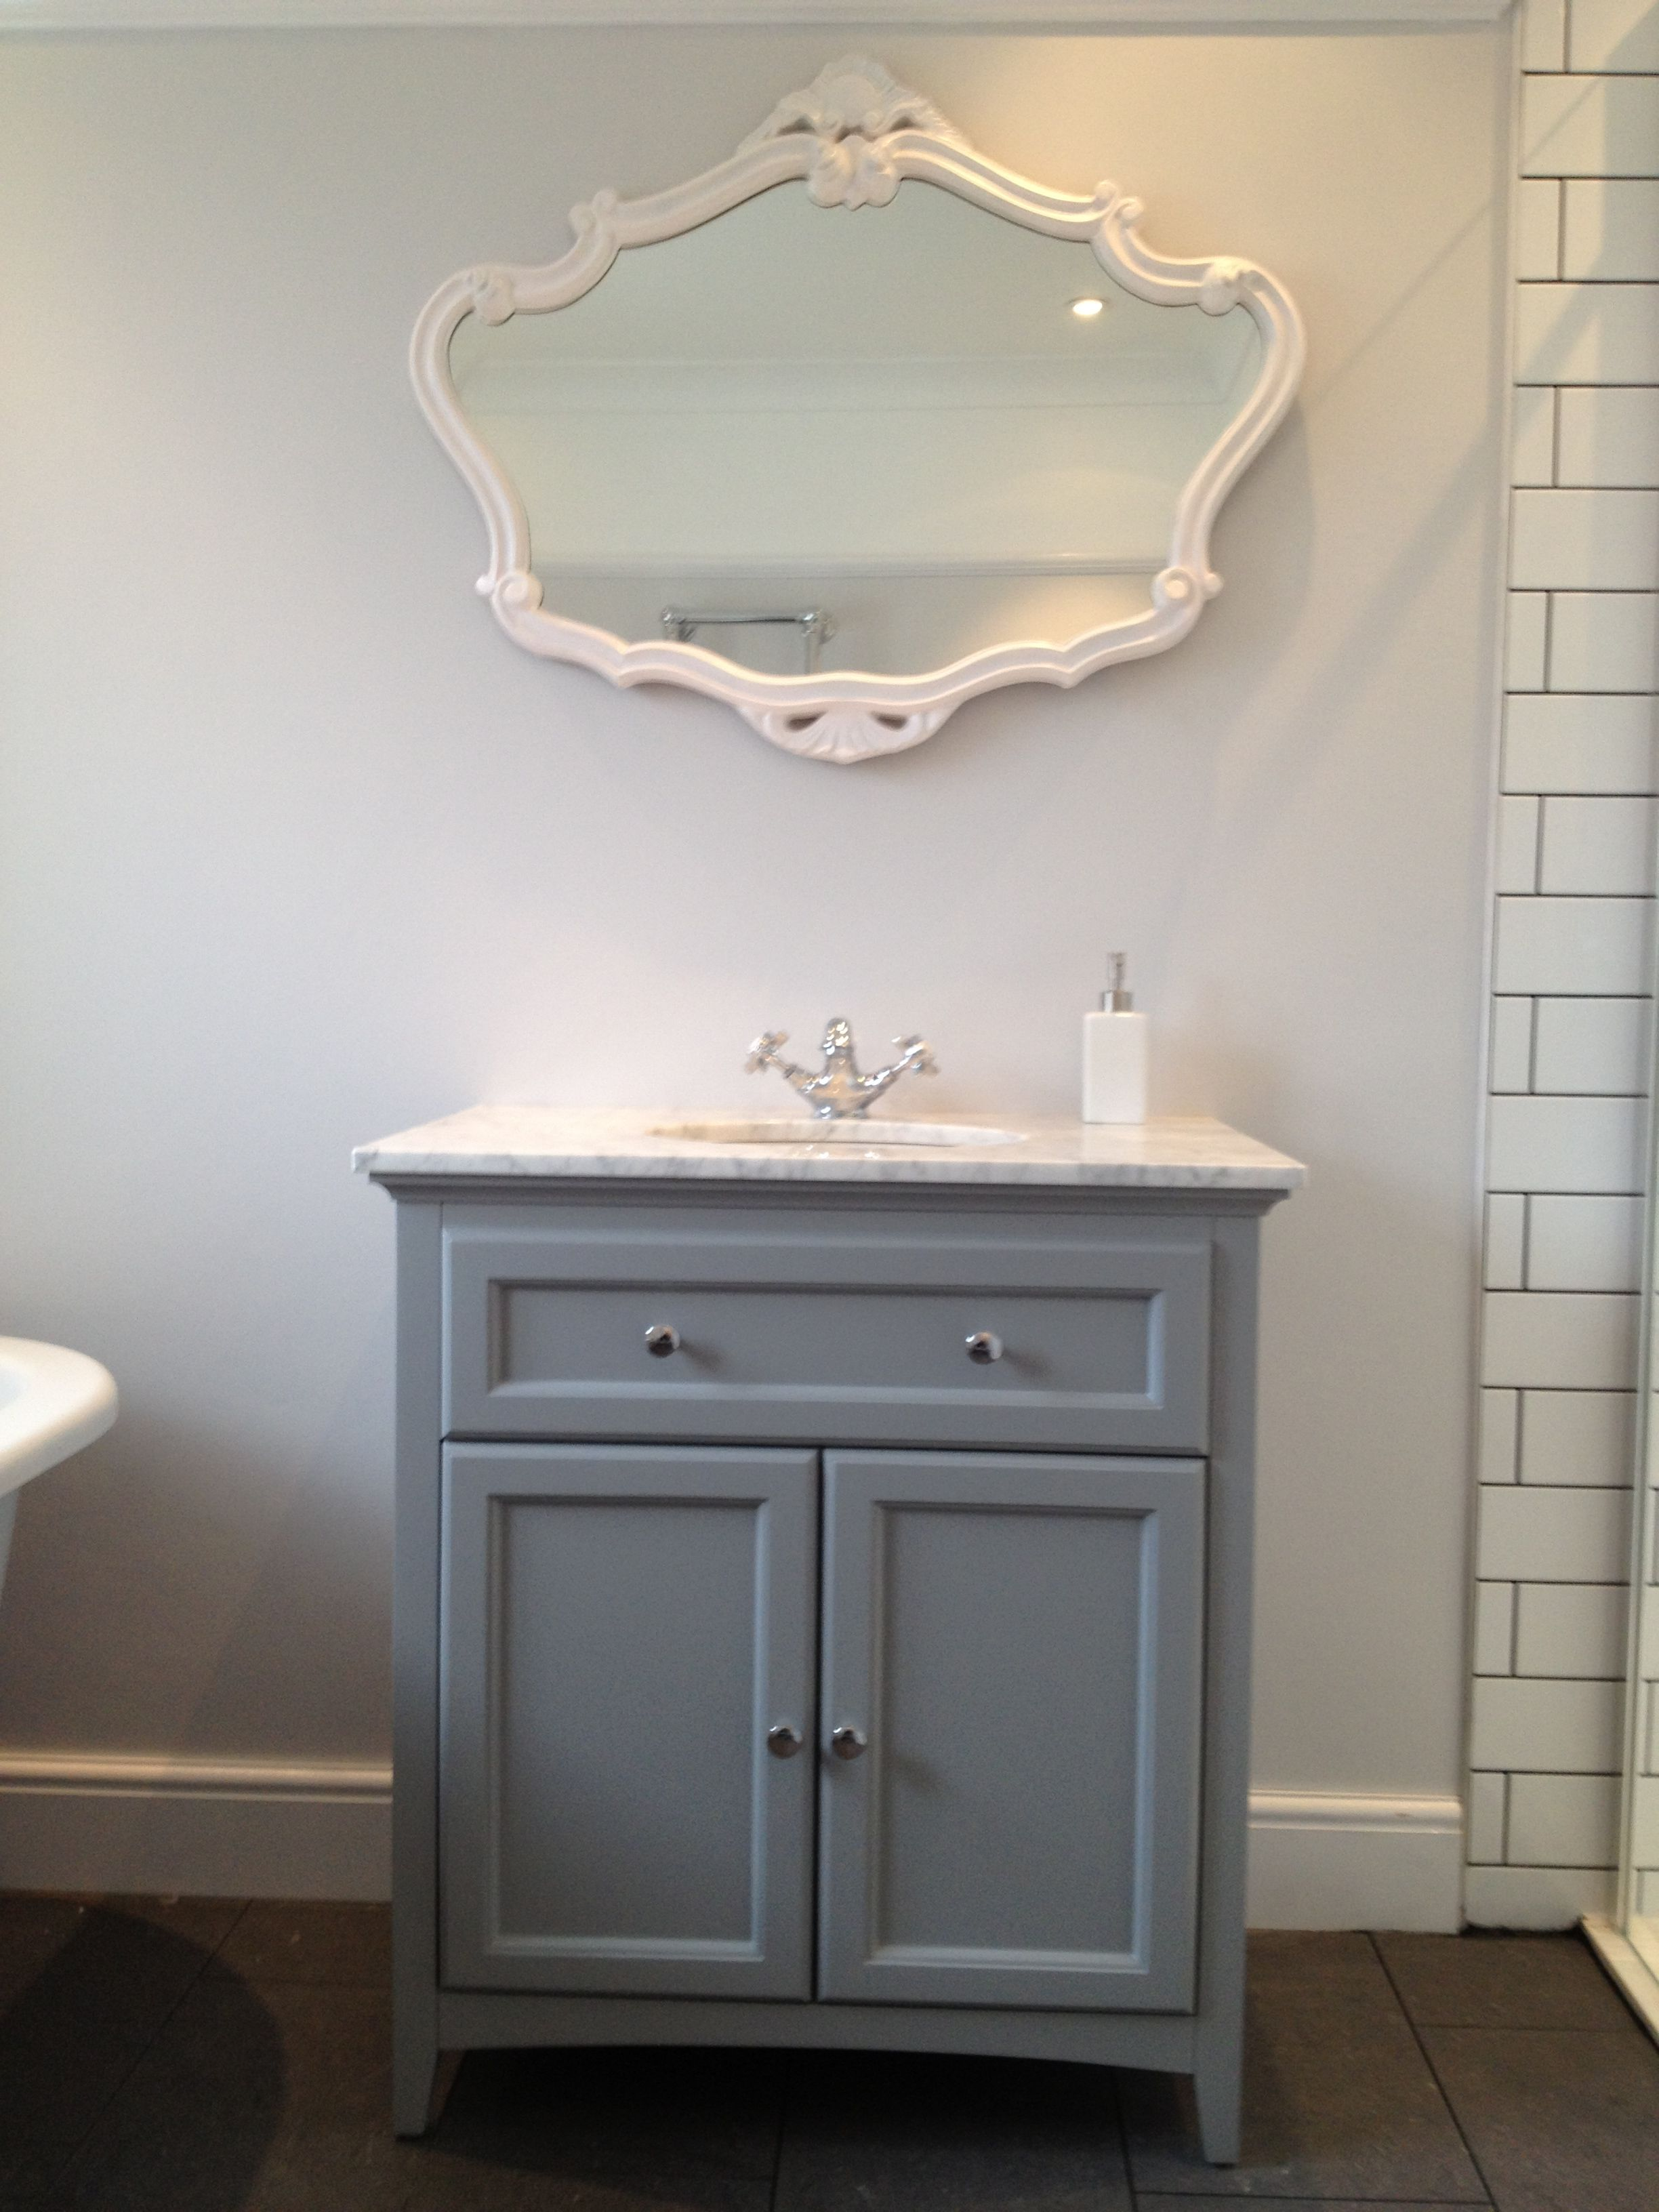 Bathroom designed and installed by Aquanero Bathroom Design & Installation  Supplied by Bathstore and Fired Earth